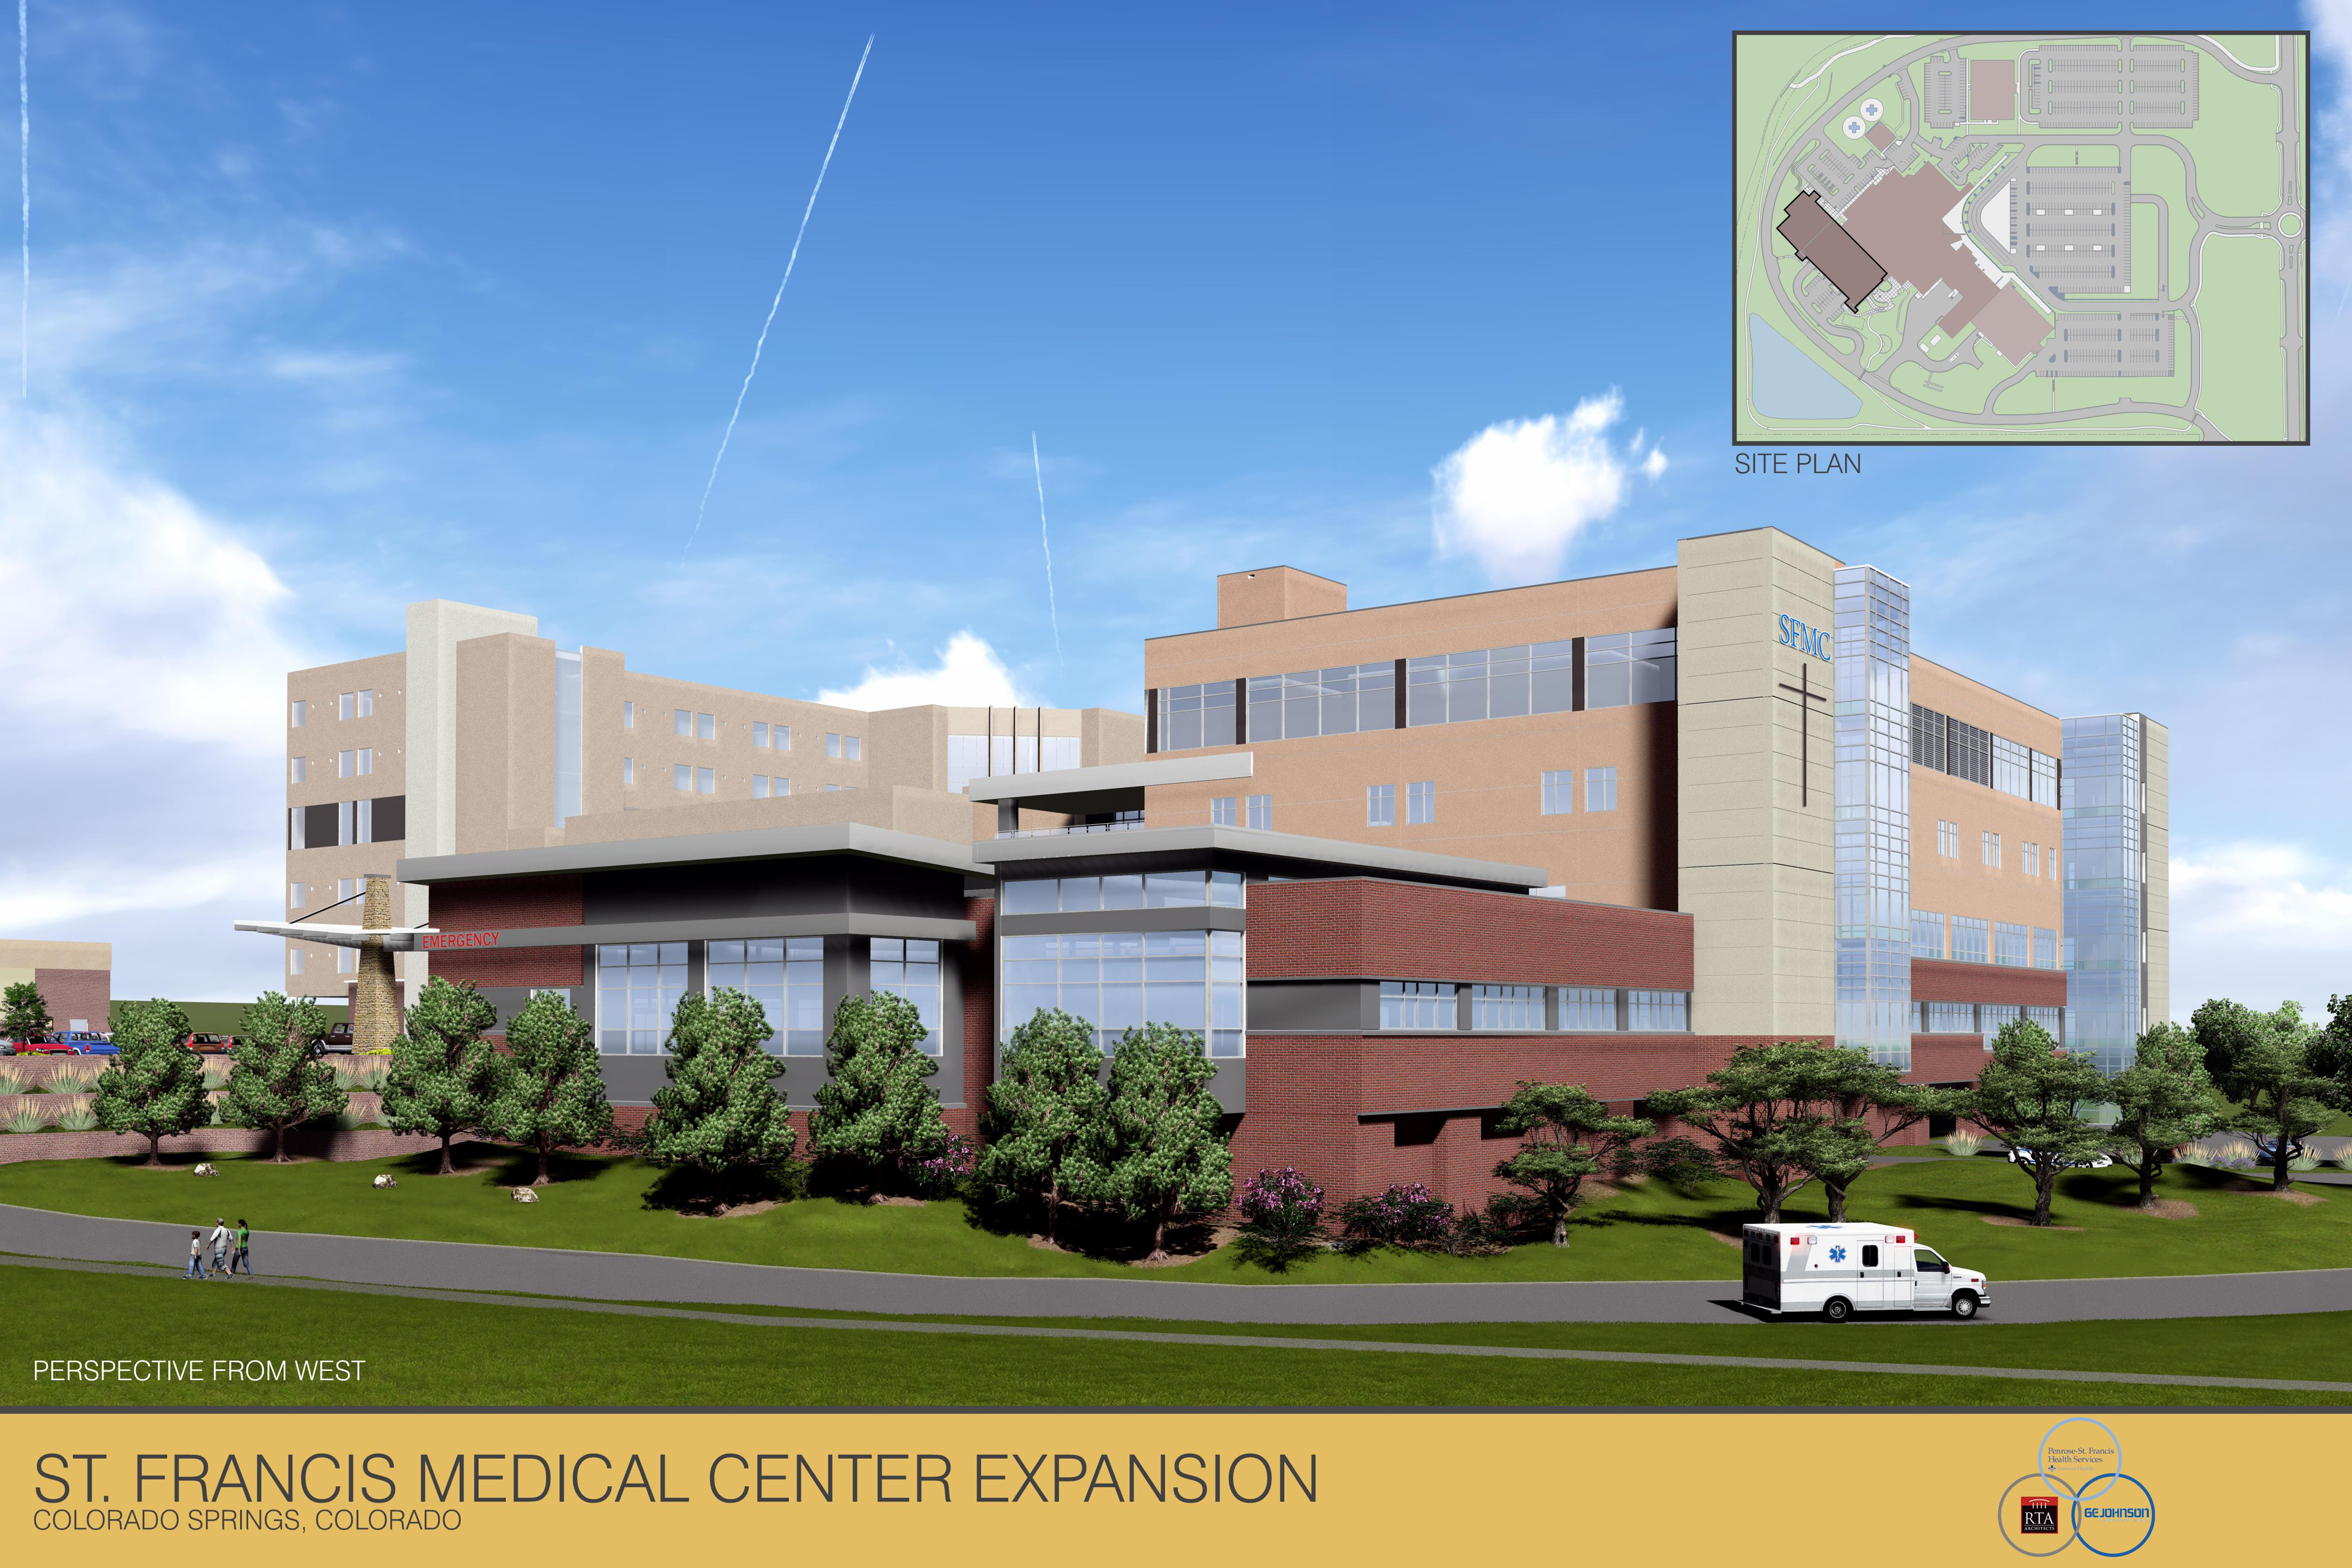 St Francis Medical Center >> St Francis Medical Center Begins Expansion Project To Care